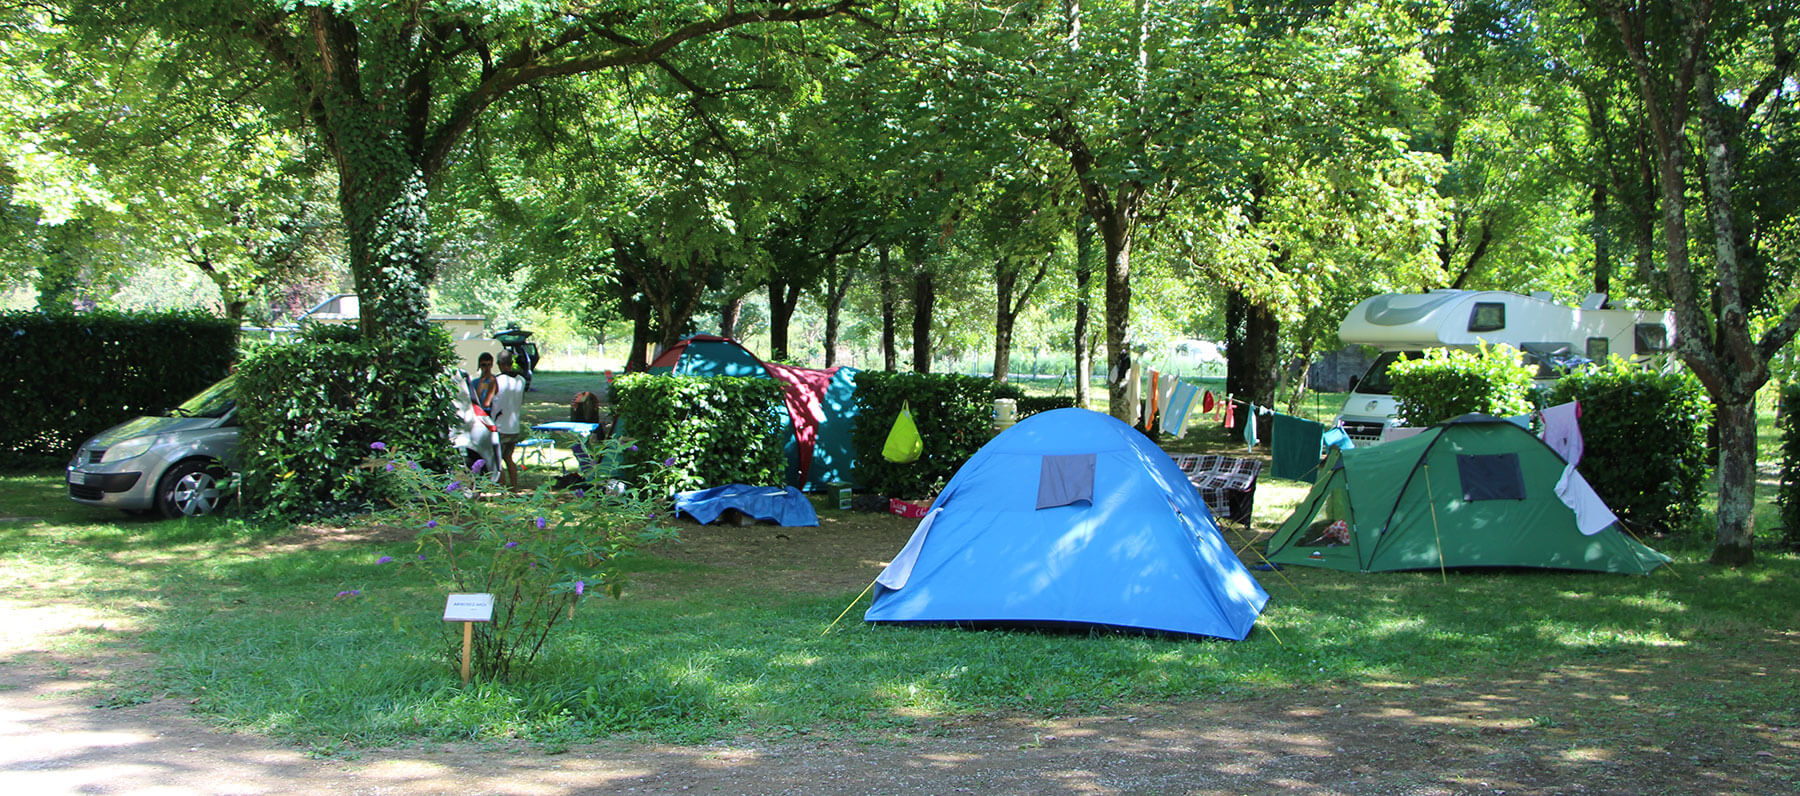 Shaded accommodation for tents in the Lot